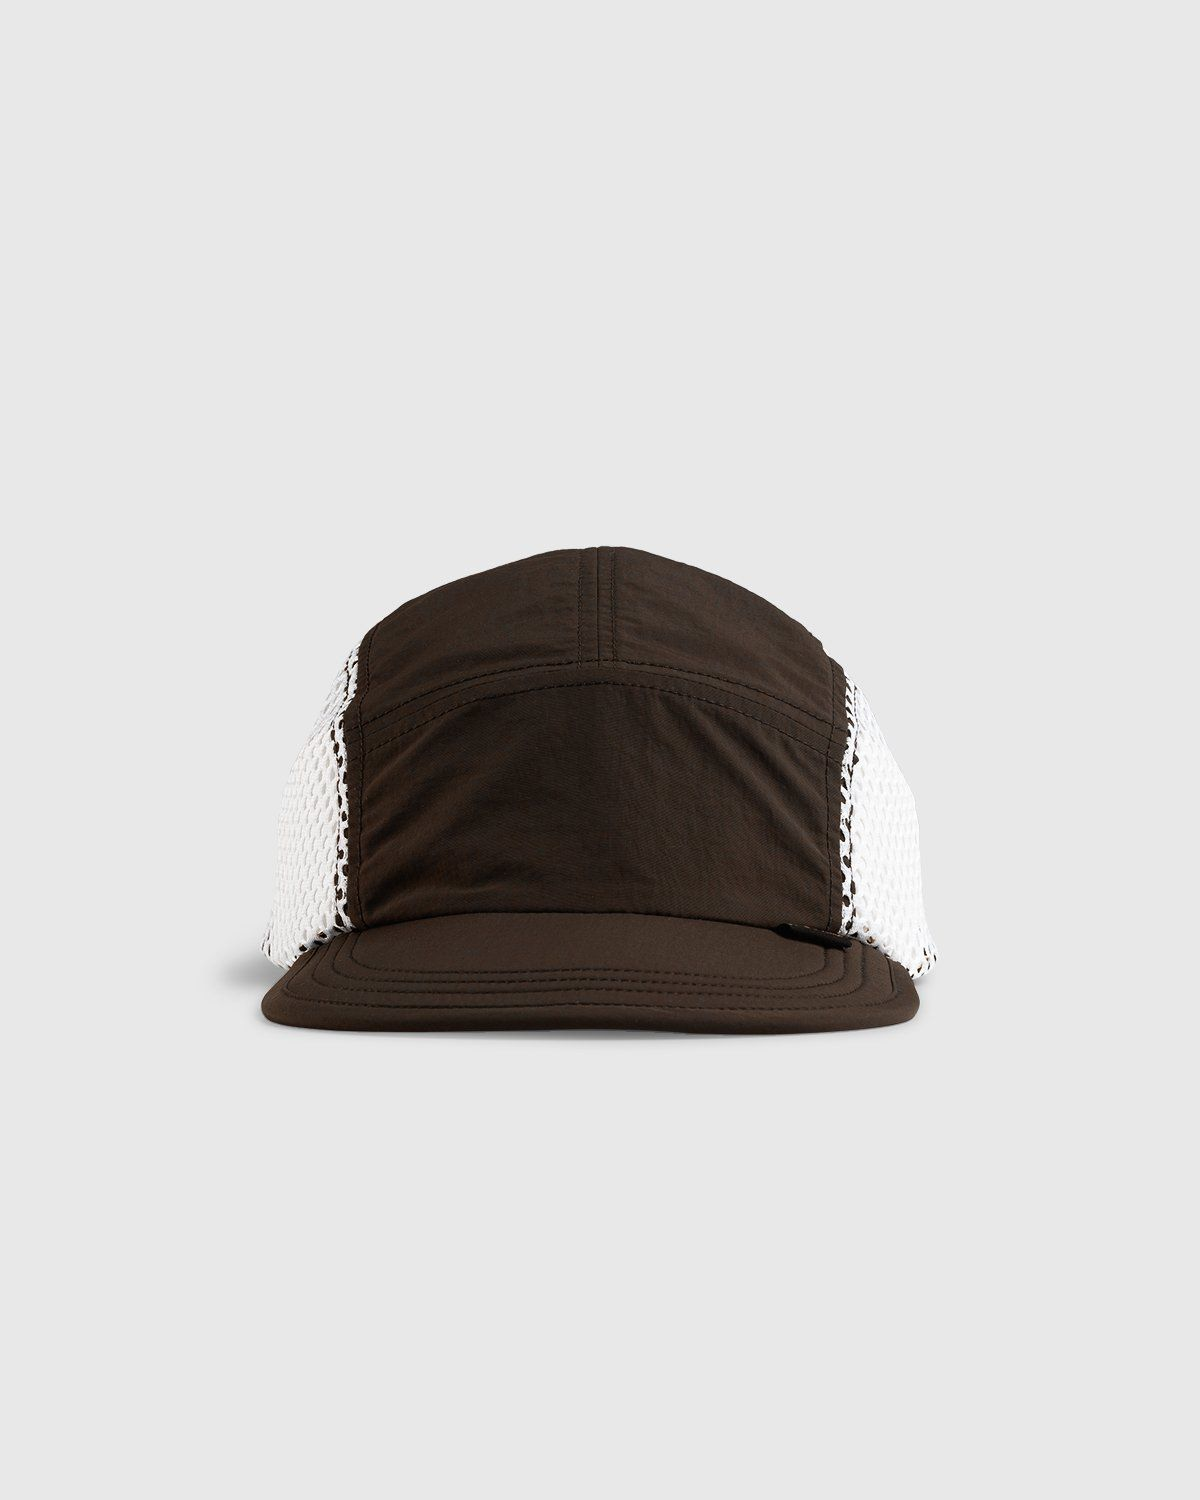 Gramicci for Highsnobiety – Cap Brown - Image 2